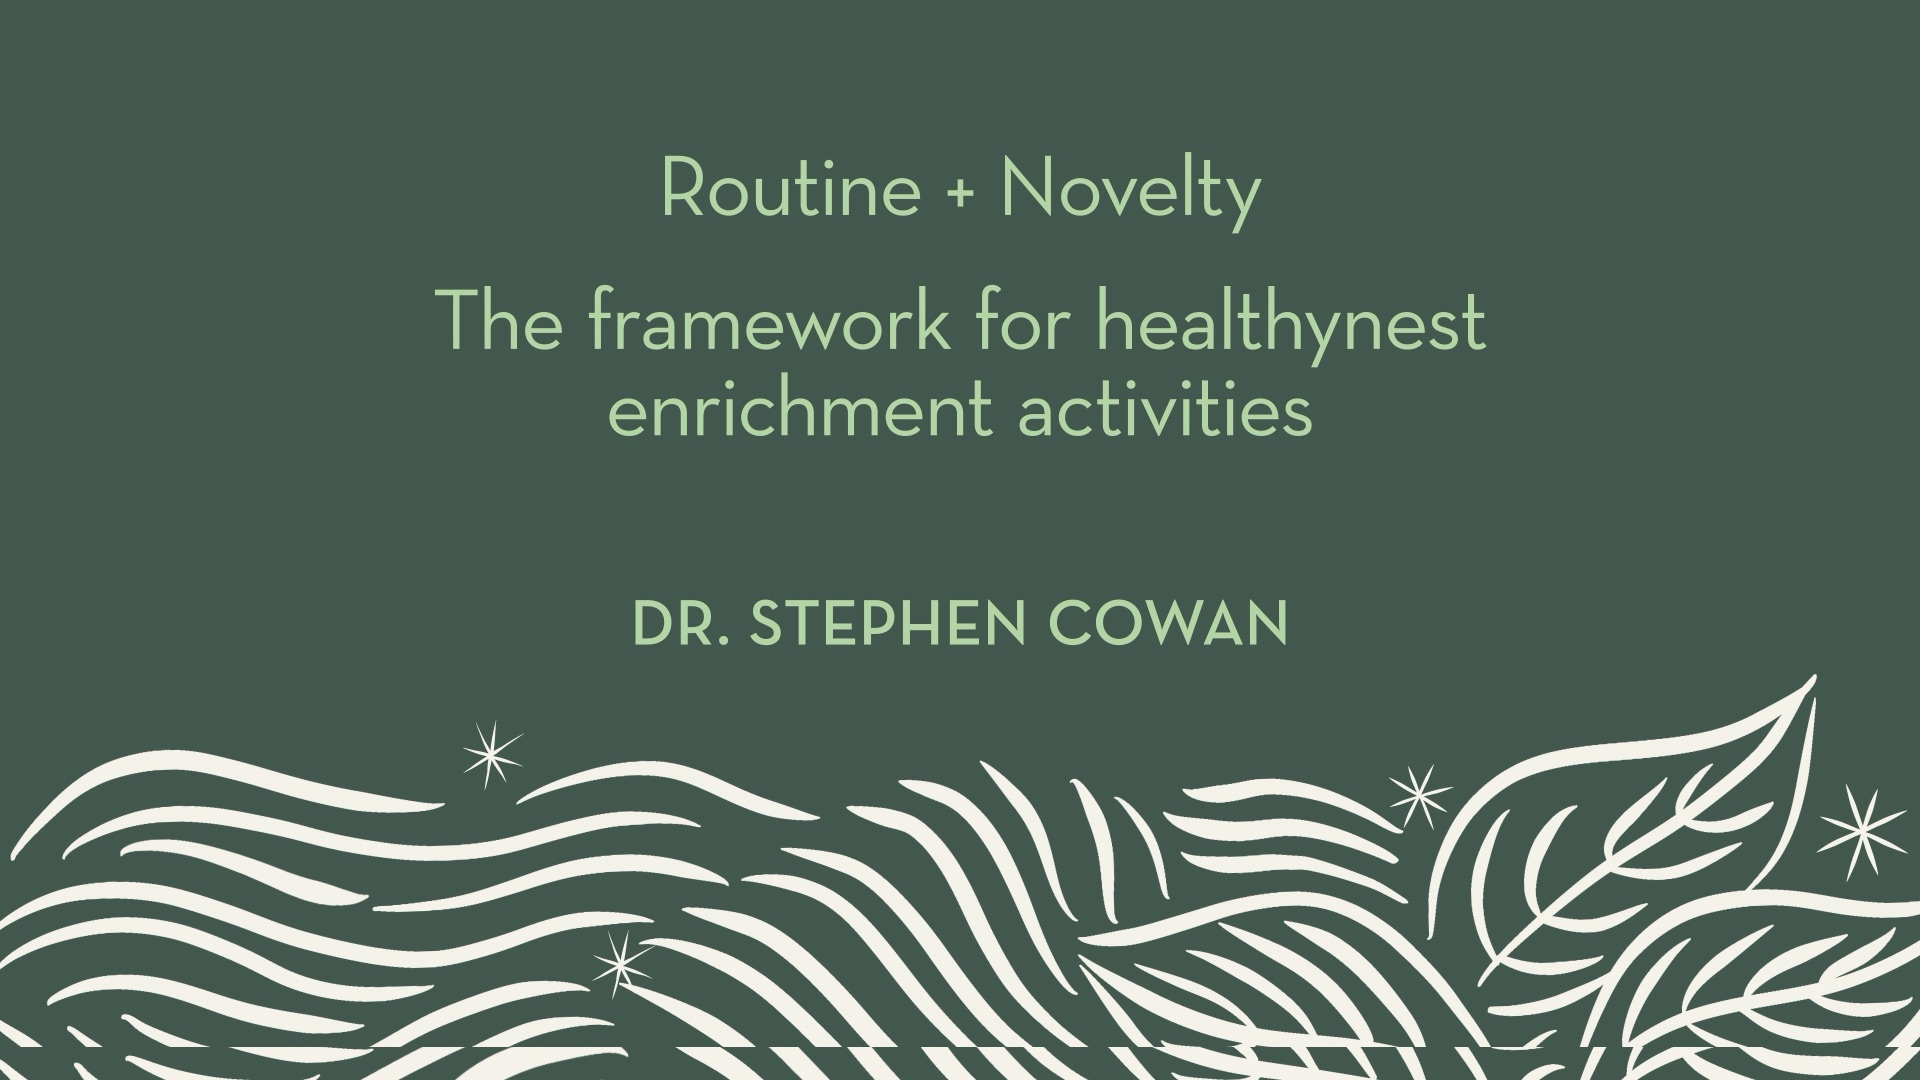 Dr. Cowan | Routine + Novelty - the framework for healthynest enrichment activities